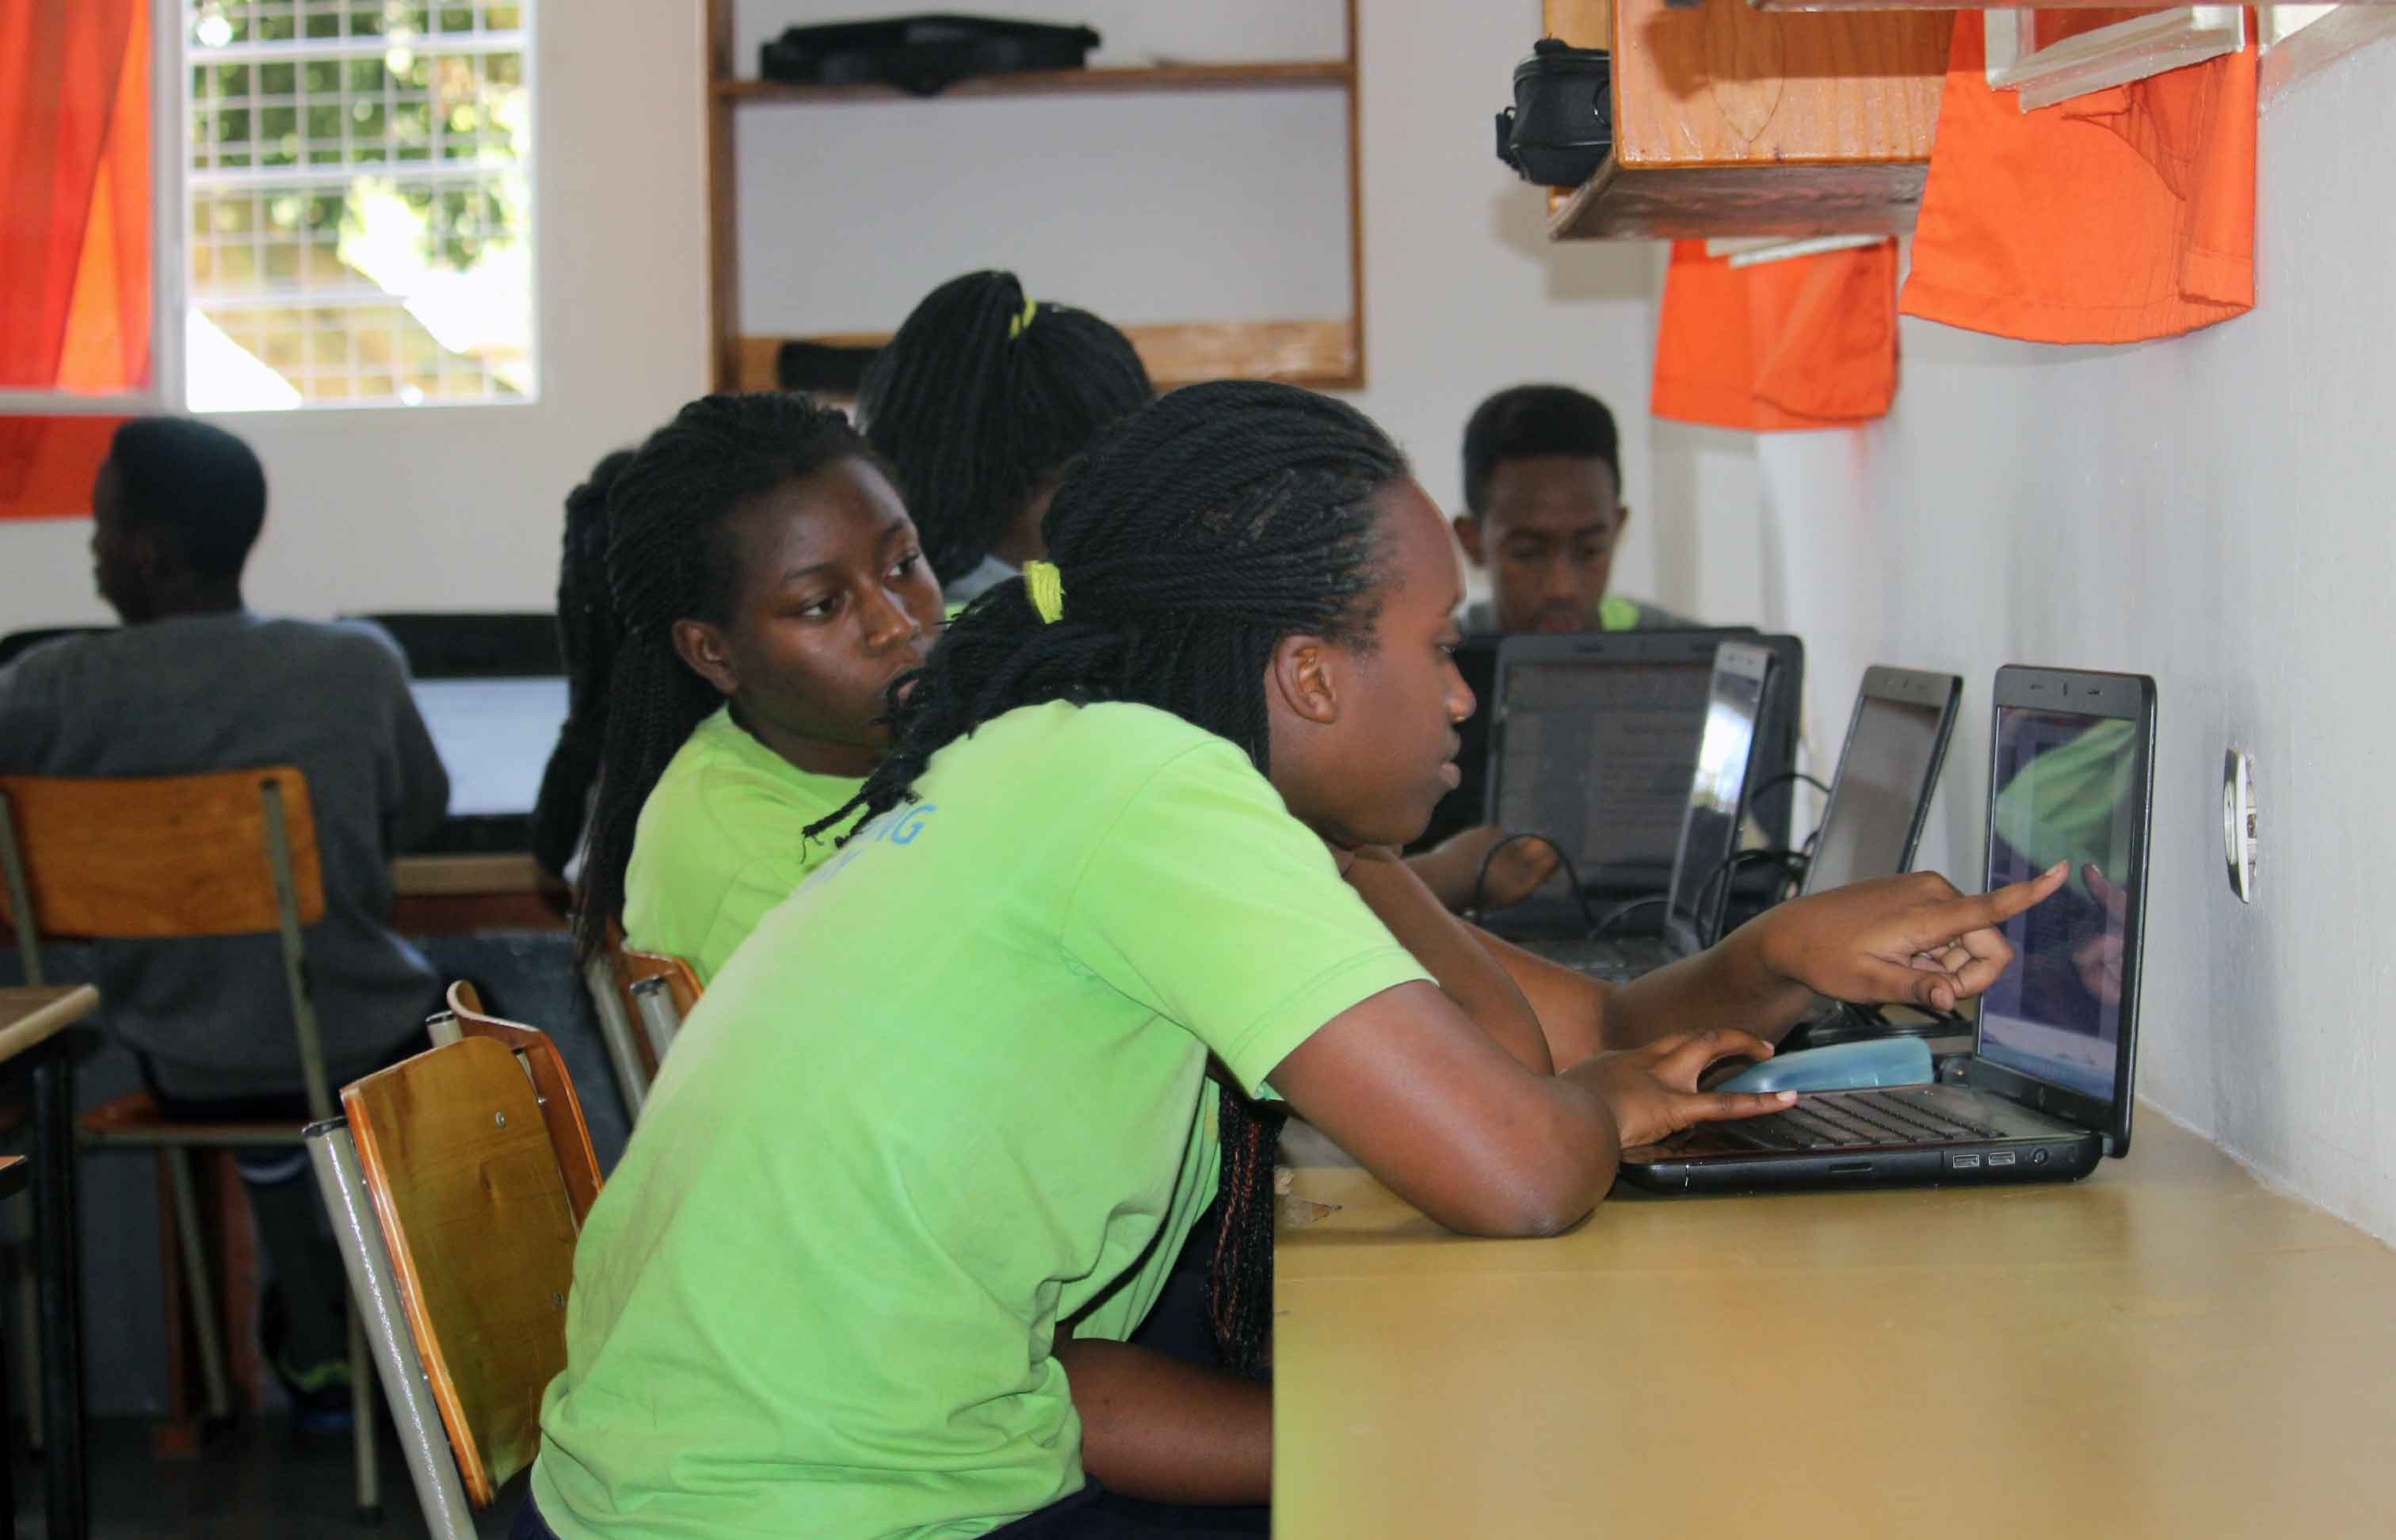 Students using the computer